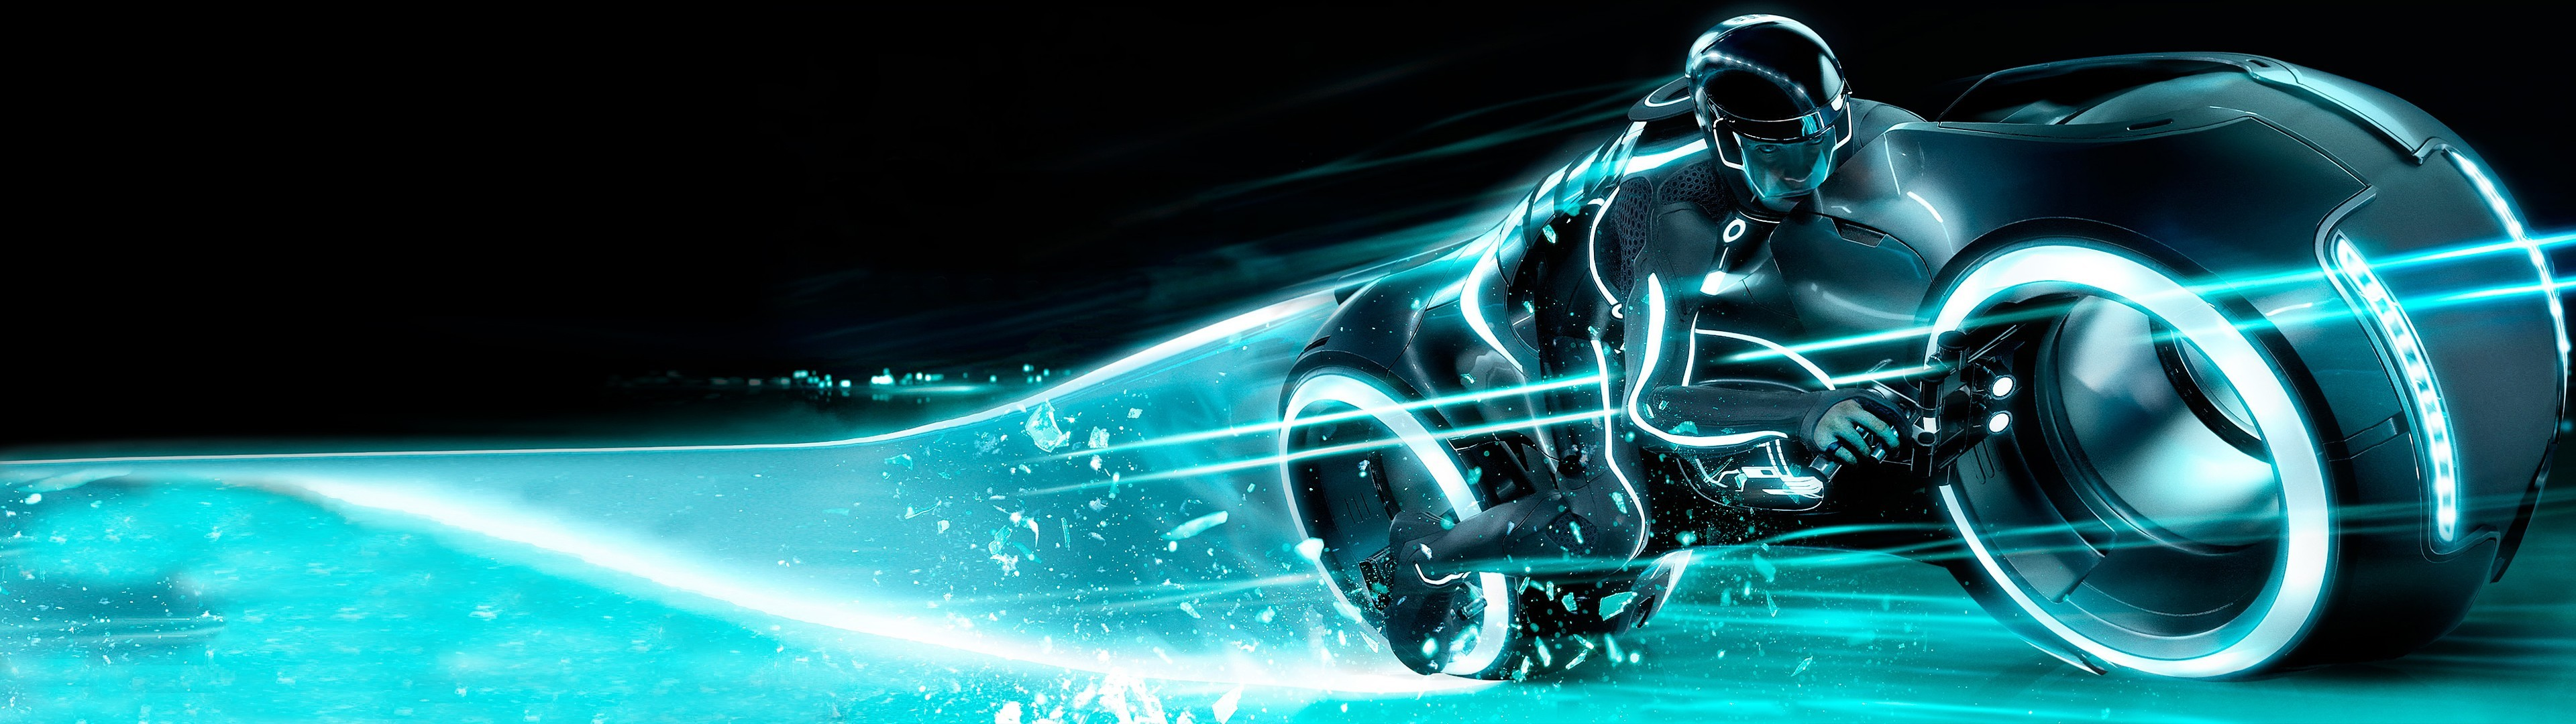 Tron Legacy TRON Wallpaper thestockmasters   HD Wallpapers   Pinterest    Tron light cycle, Cycling and Wallpaper